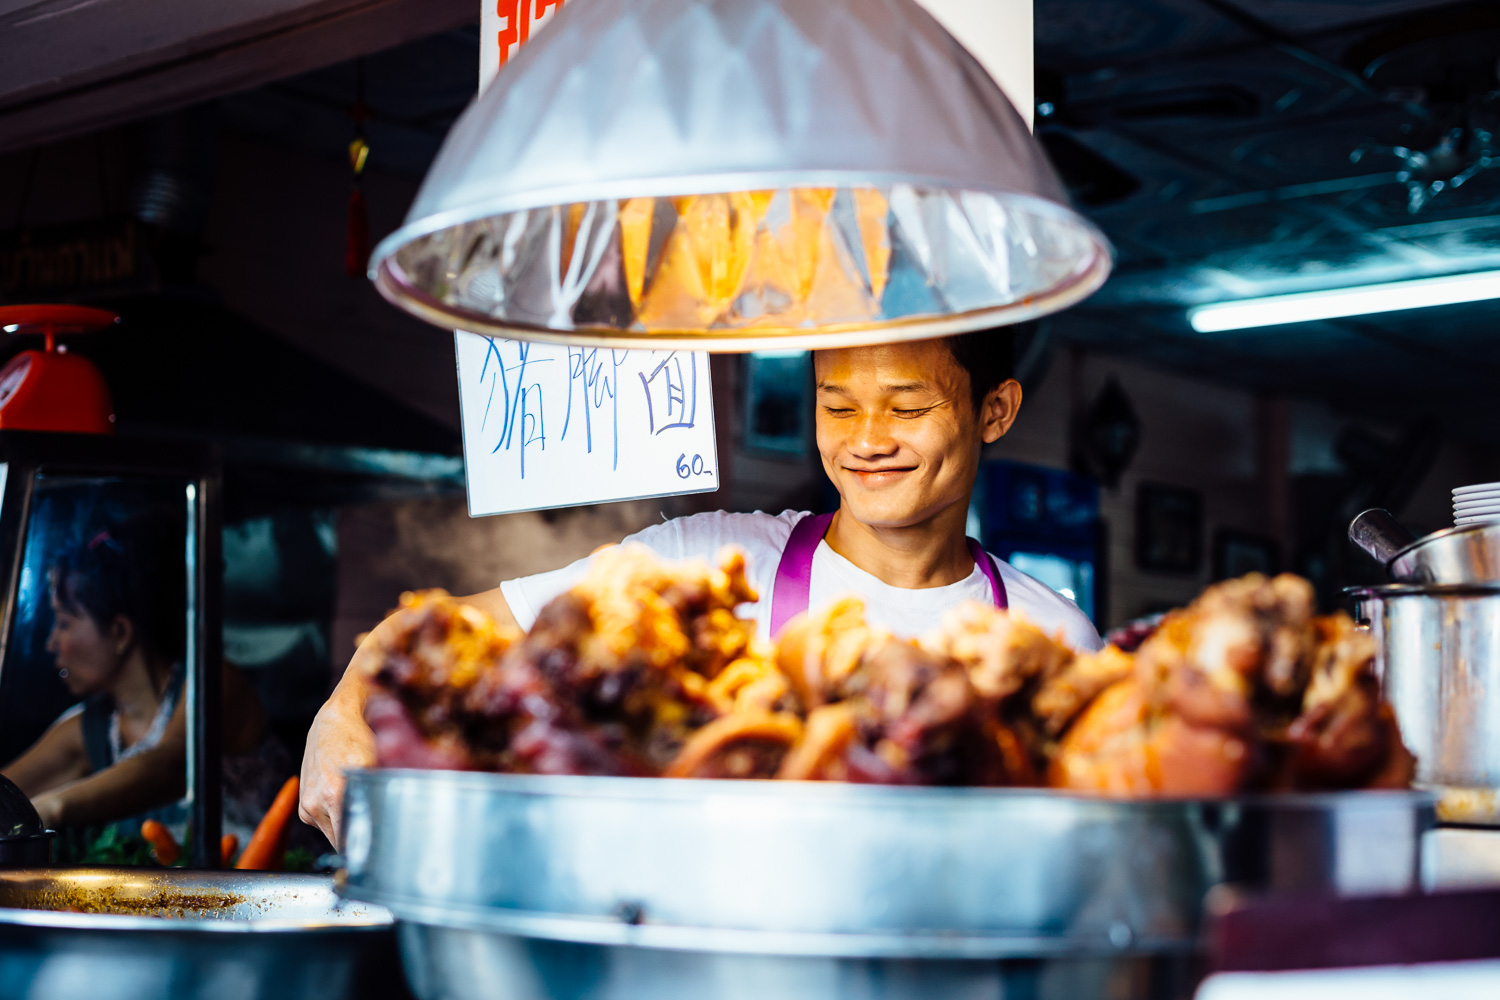 Bangkok-Thailand-Travel-Photography-Smile-People-Street-Fried-Chicken-Vendor.jpg